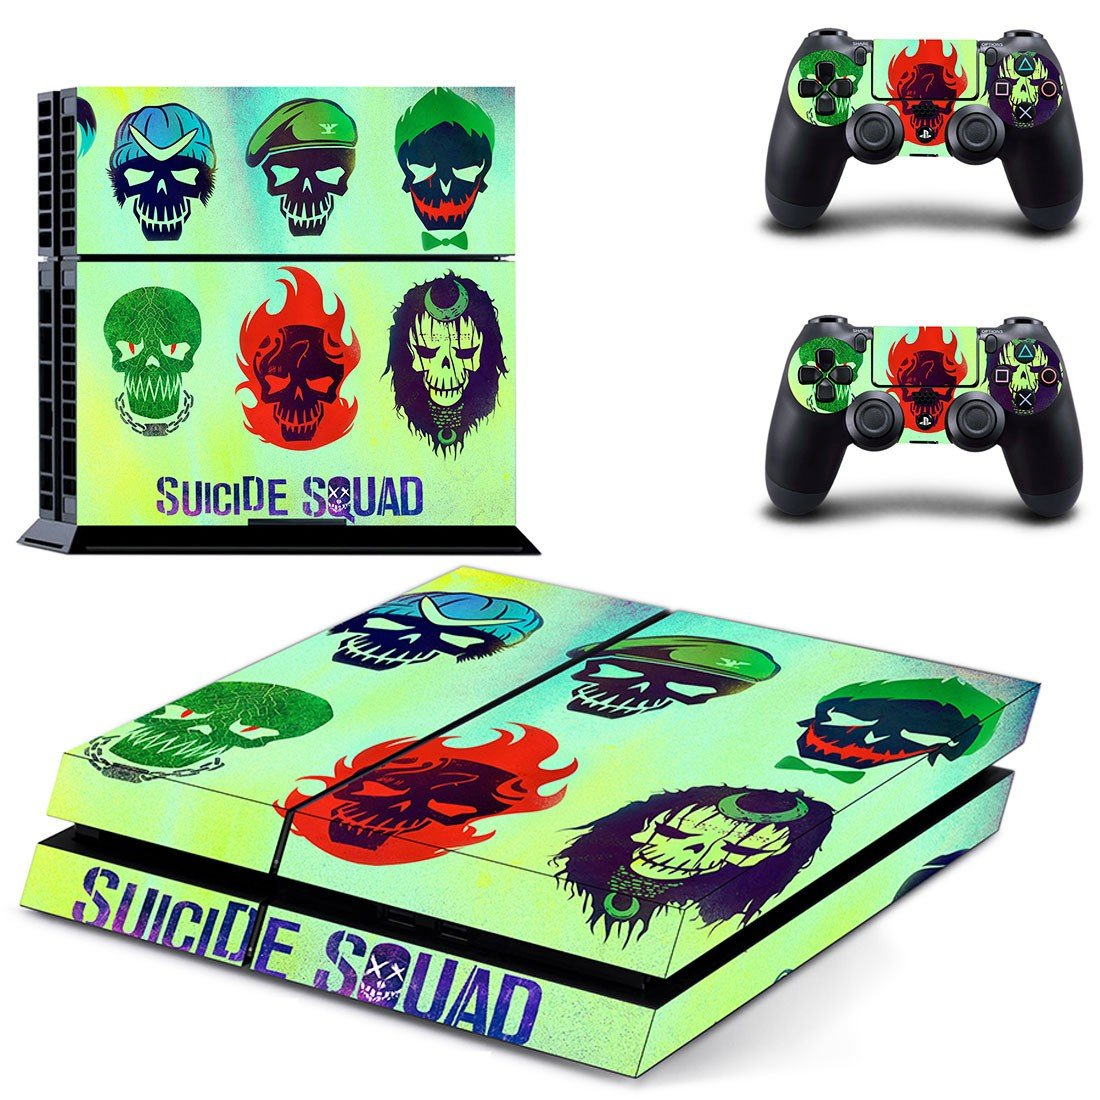 Suicide Squad ps4 skin decal for console and controllers